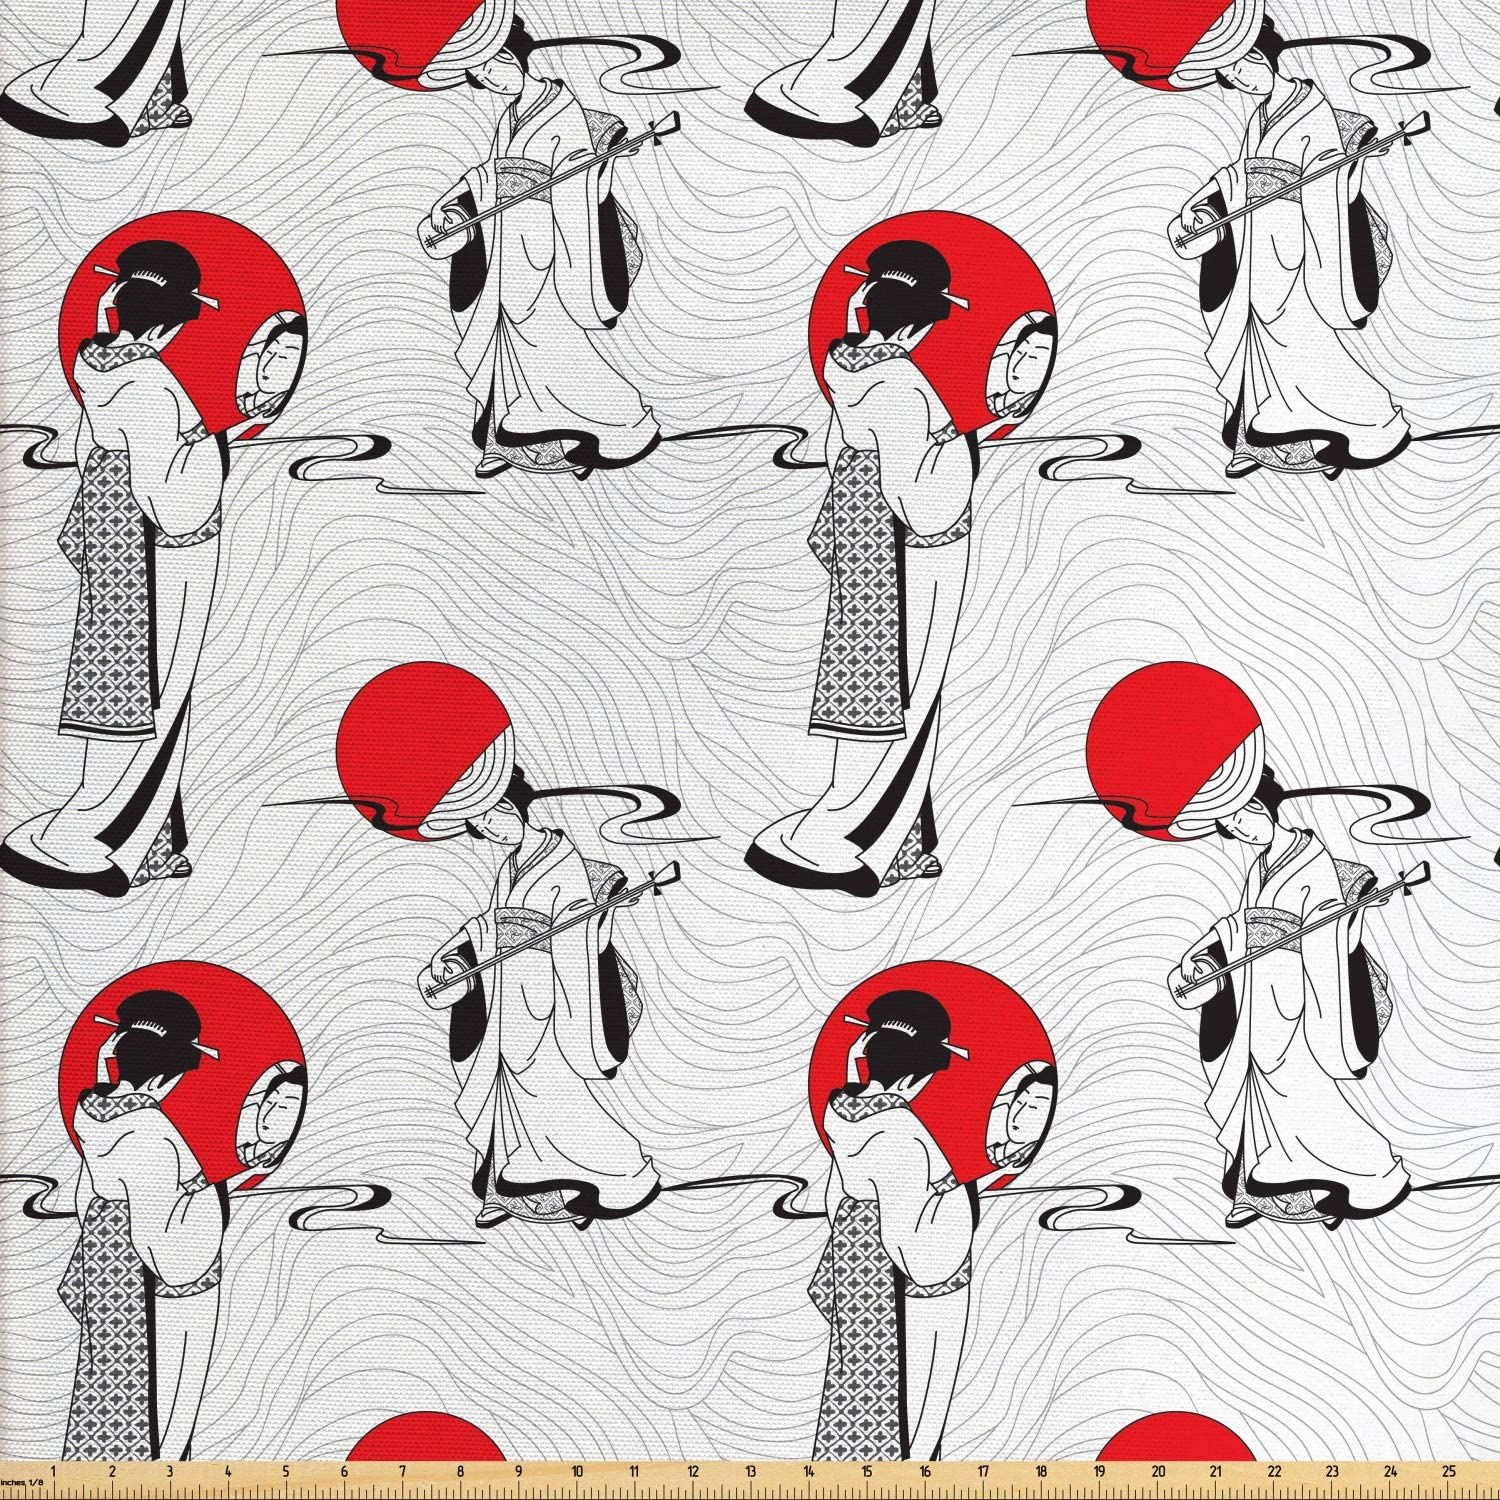 Ambesonne Asian Fabric by The Yard, Japanese Geisha Girl with Traditional Kimono Folk Culture Style, Decorative Fabric for Upholstery and Home Accents, 1 Yard, Black Red